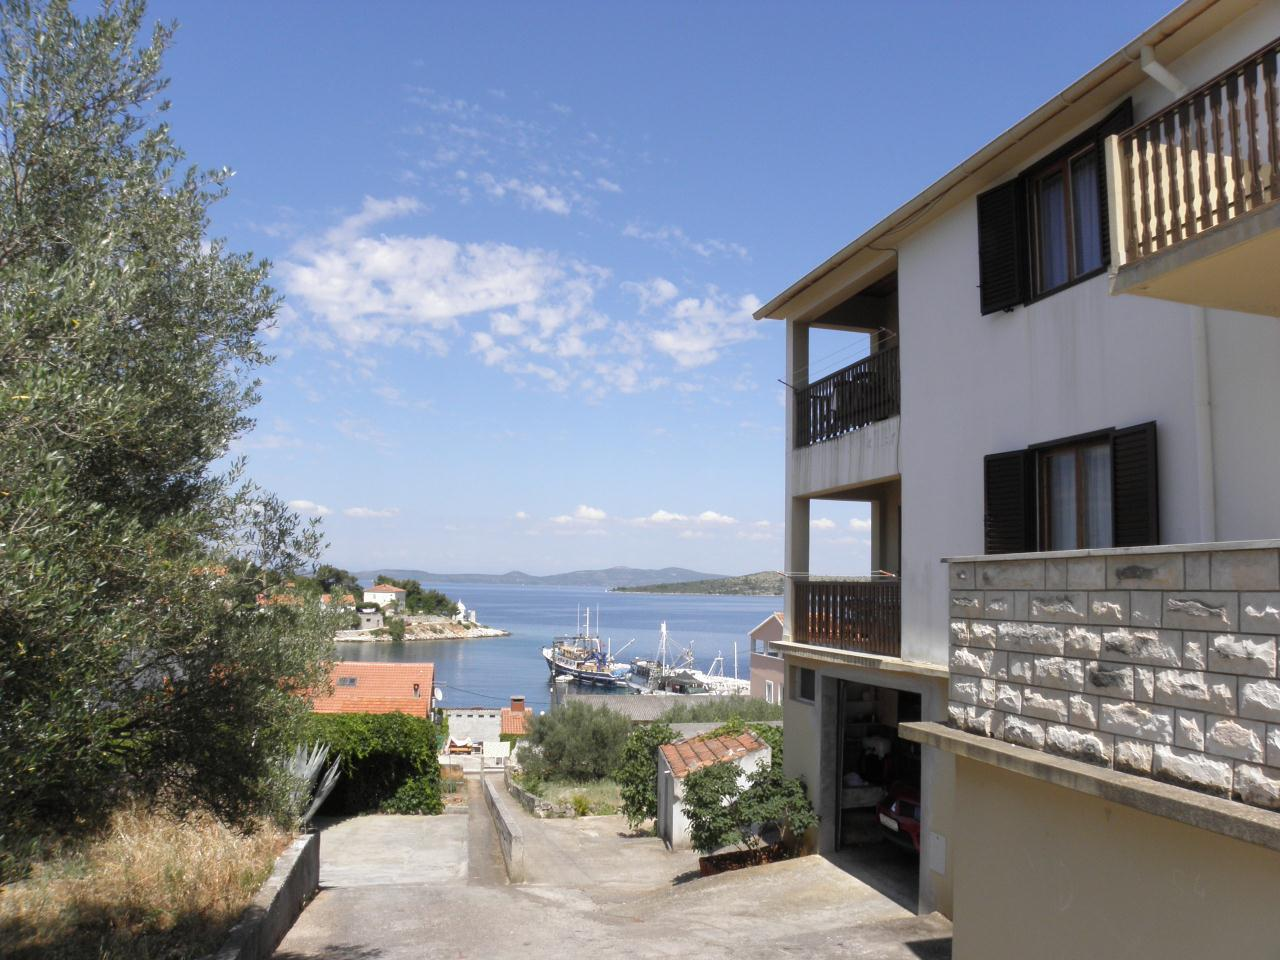 2620 - Sali - Apartments Croatia